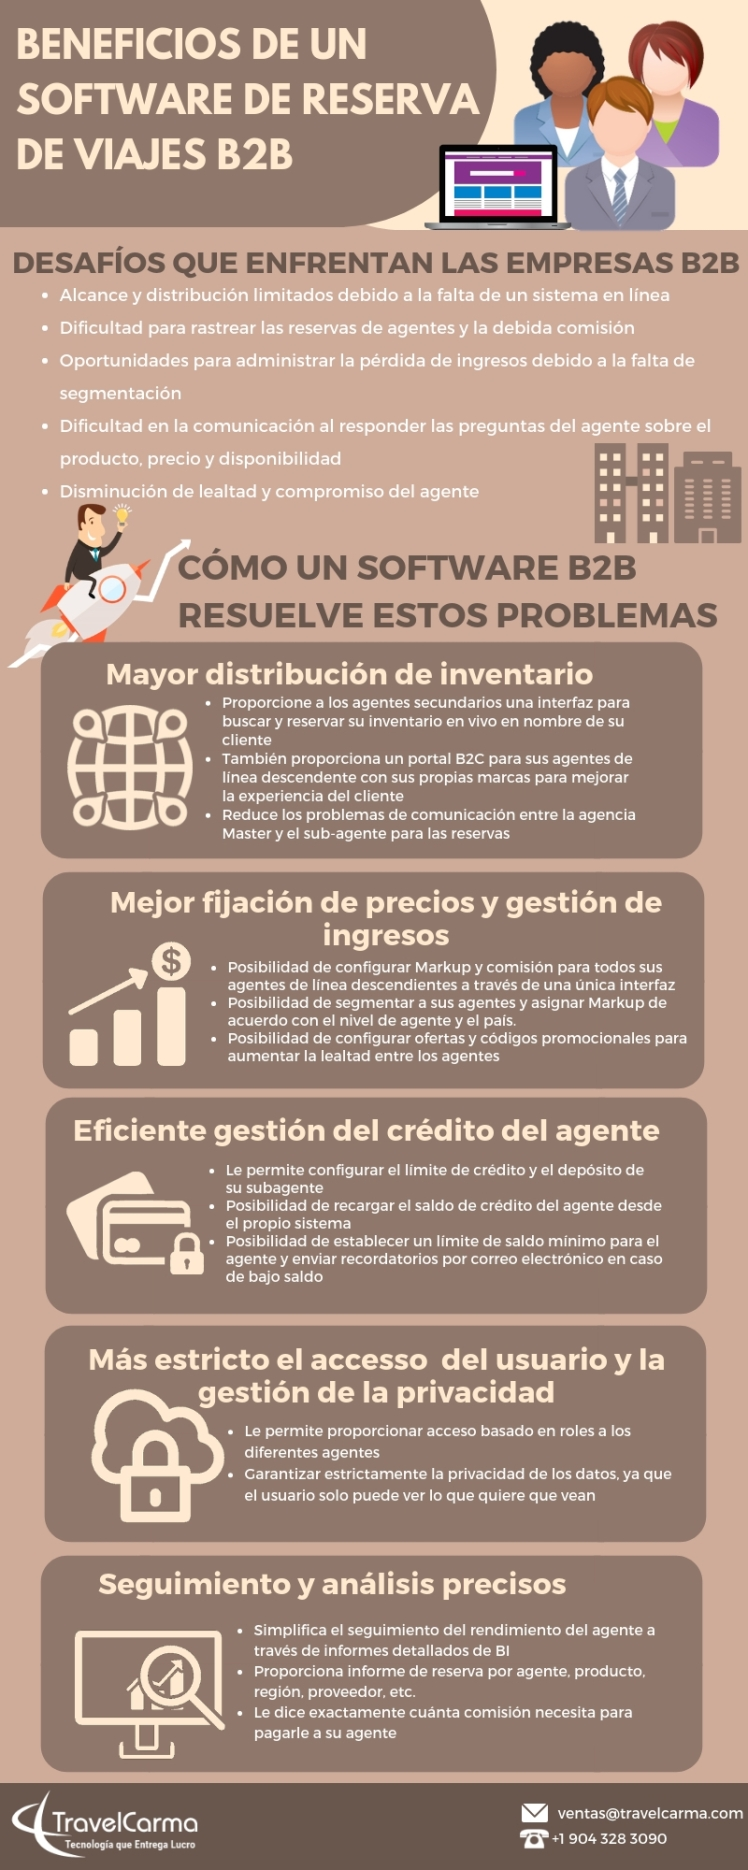 Beneficios de un Software de Reserva de Viajes B2B